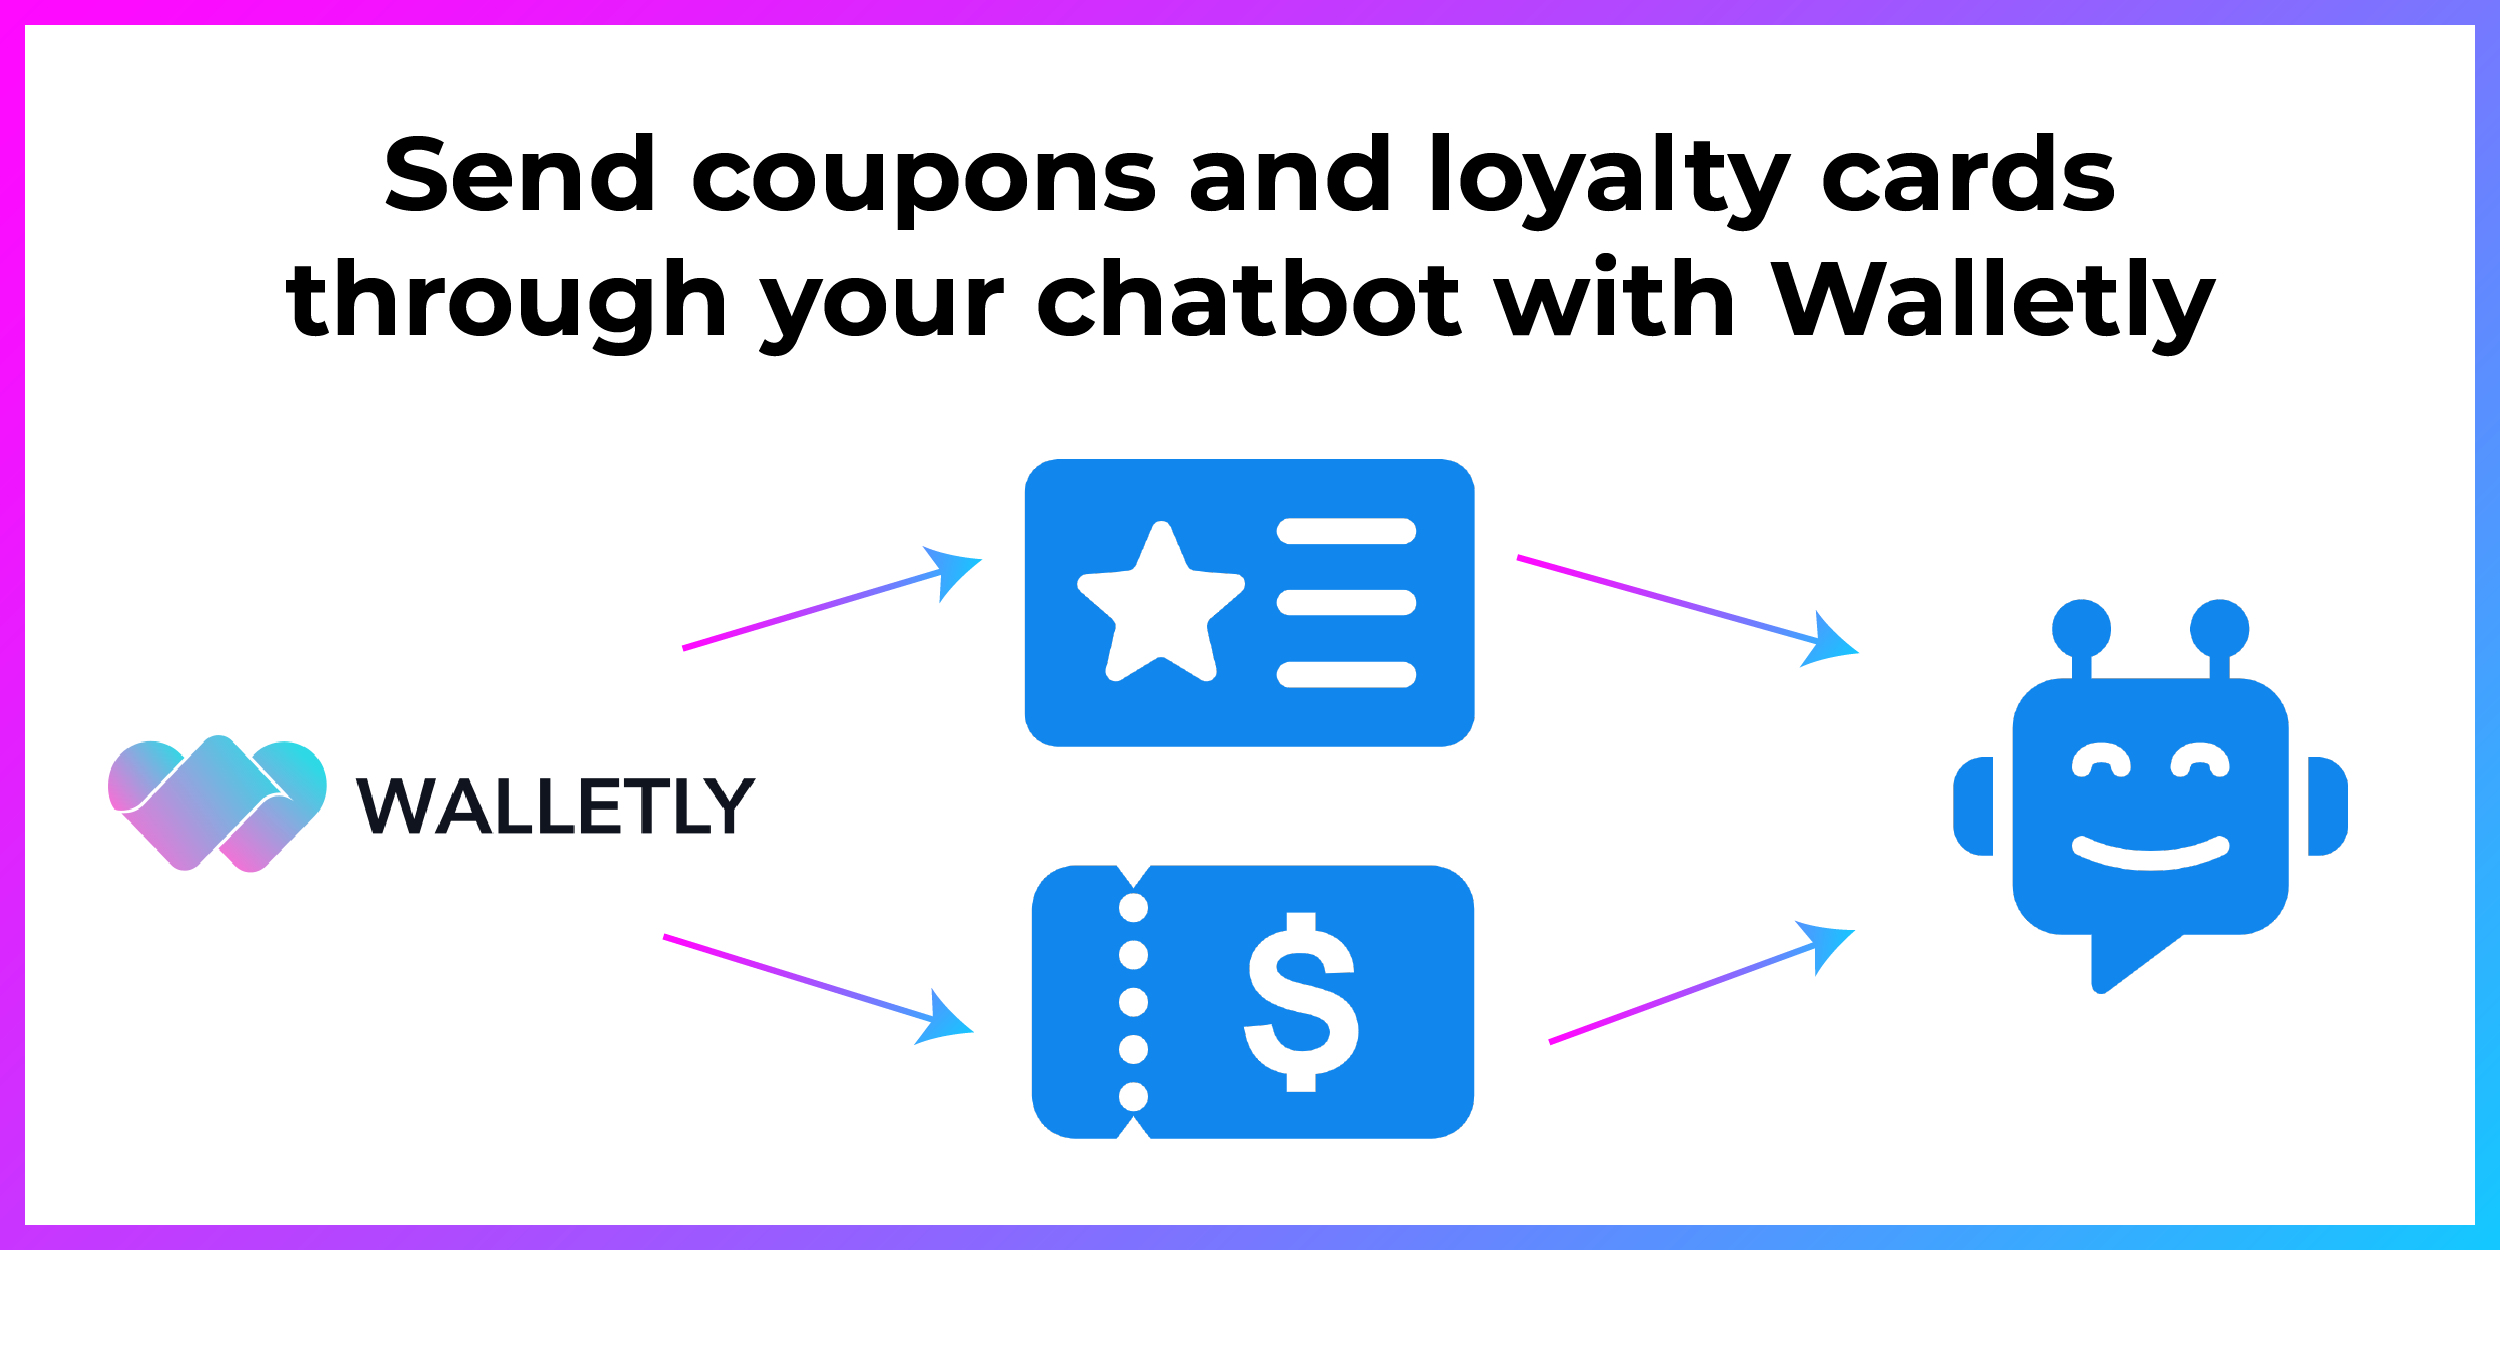 Walletly: Send coupons and loyalty cards with your chatbot